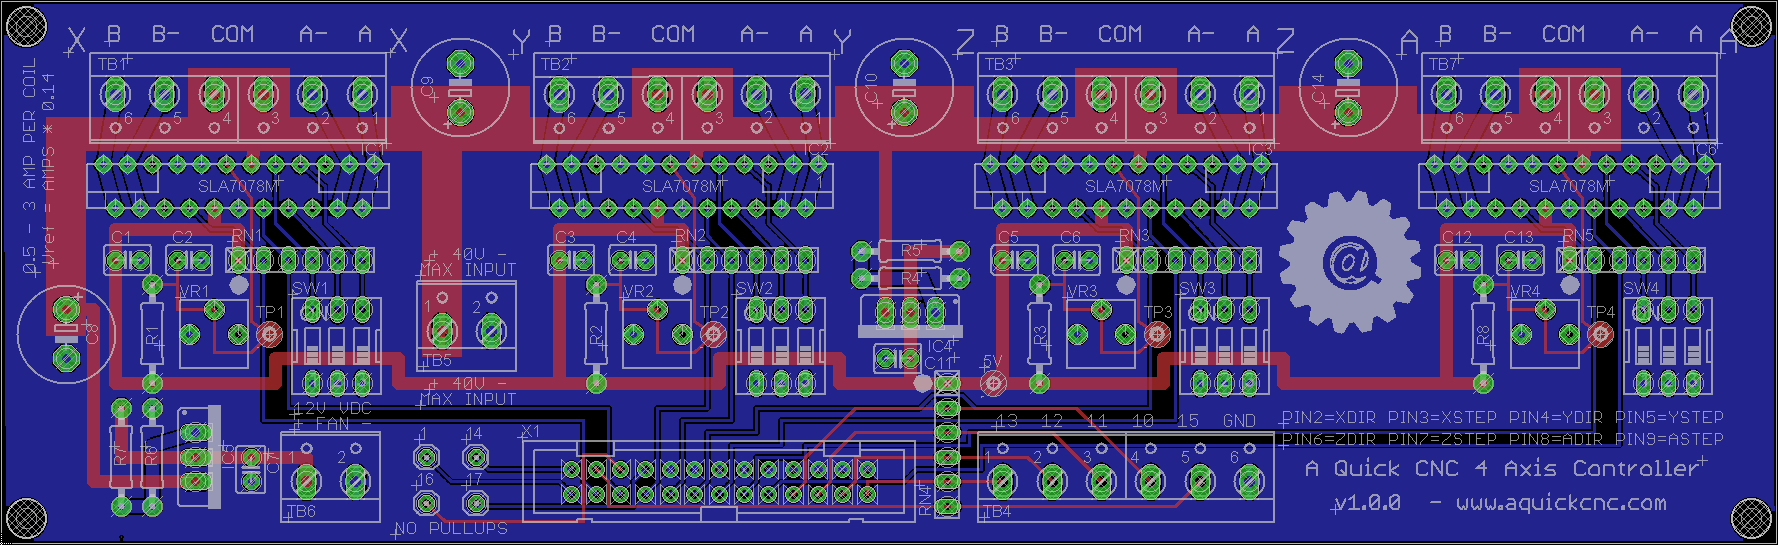 WRG-8765] Wiring Diagram For Homemade Cnc on battery diagrams, lighting diagrams, friendship bracelet diagrams, electronic circuit diagrams, hvac diagrams, led circuit diagrams, honda motorcycle repair diagrams, series and parallel circuits diagrams, transformer diagrams, pinout diagrams, gmc fuse box diagrams, troubleshooting diagrams, engine diagrams, switch diagrams, internet of things diagrams, smart car diagrams, motor diagrams, electrical diagrams, sincgars radio configurations diagrams,